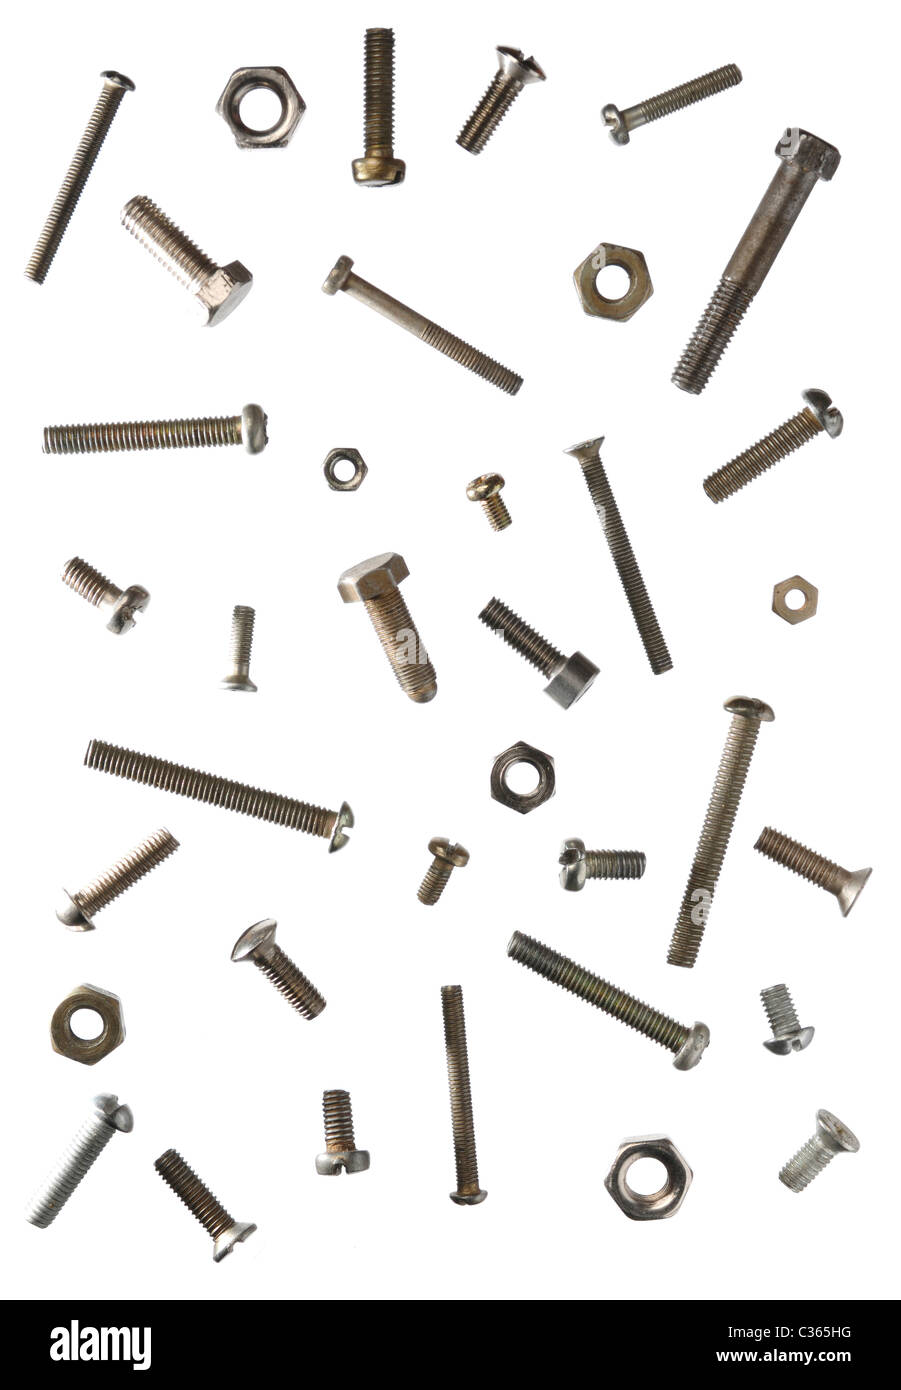 Abstract artistic background of assorted screws bolts and nuts isolated on white Stock Photo